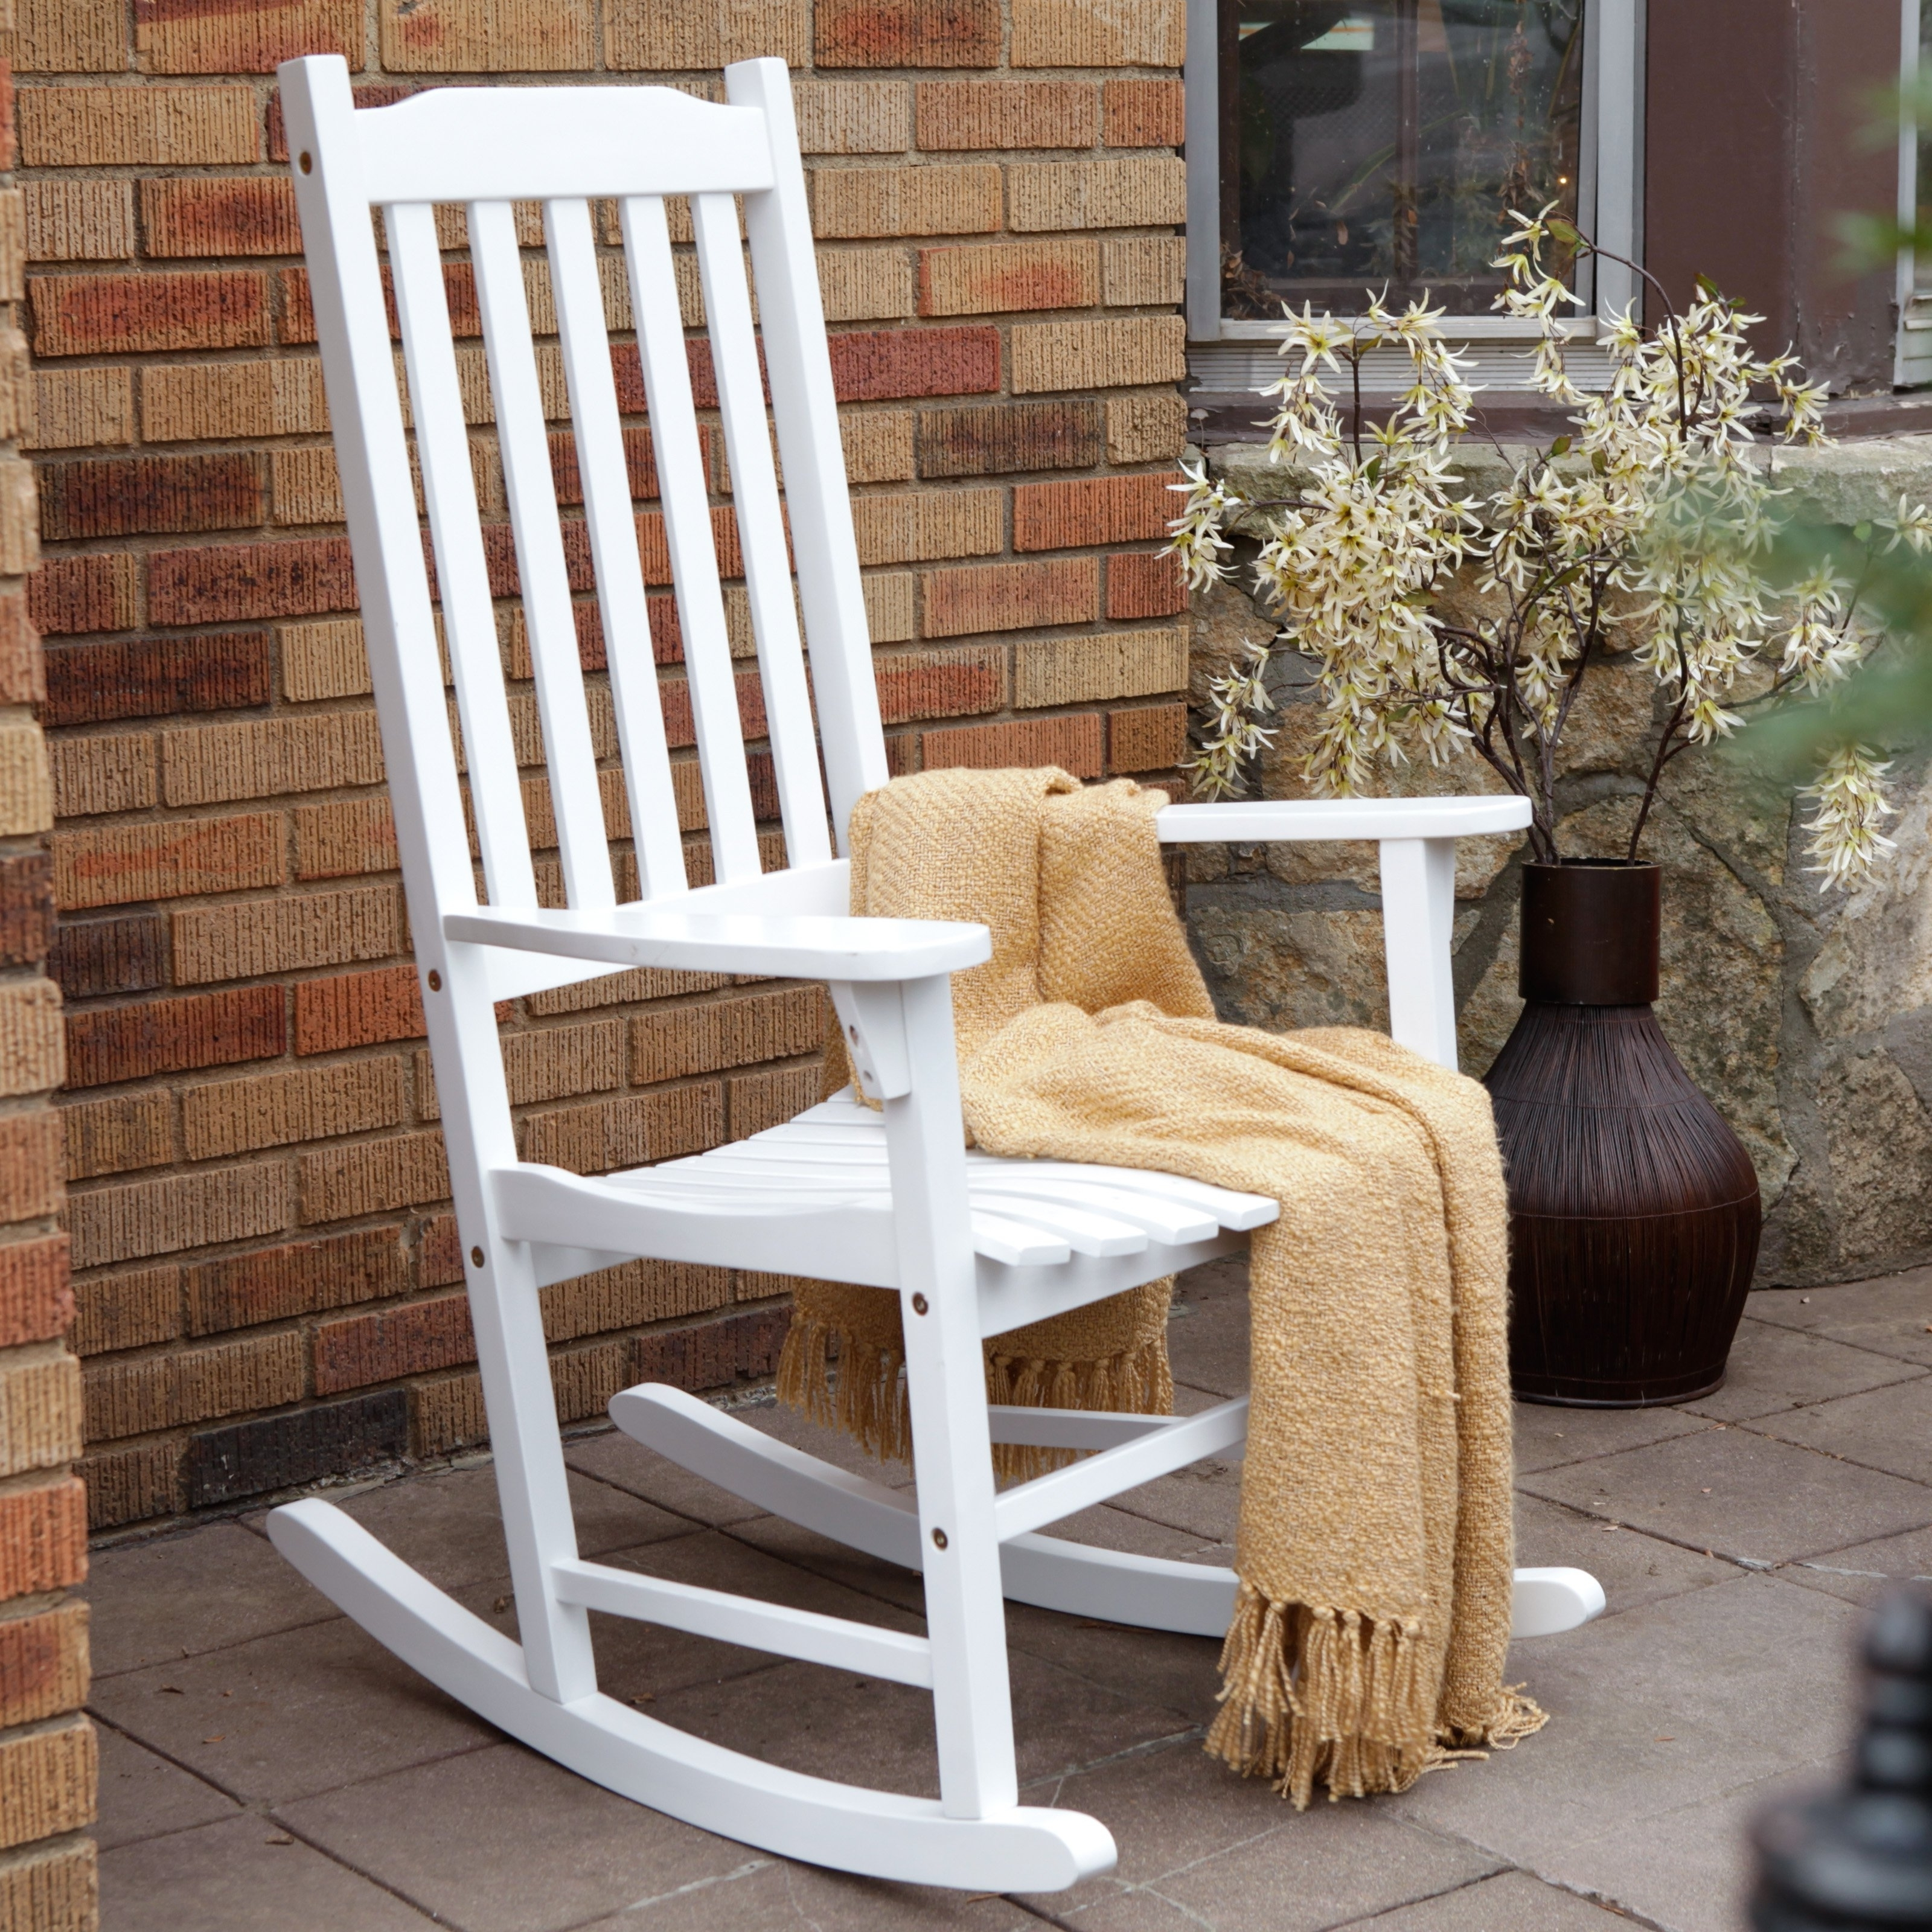 Popular Coral Coast Indooroutdoor Mission Slat Rocking Chair White With Regard To Small Patio Rocking Chairs (View 6 of 15)